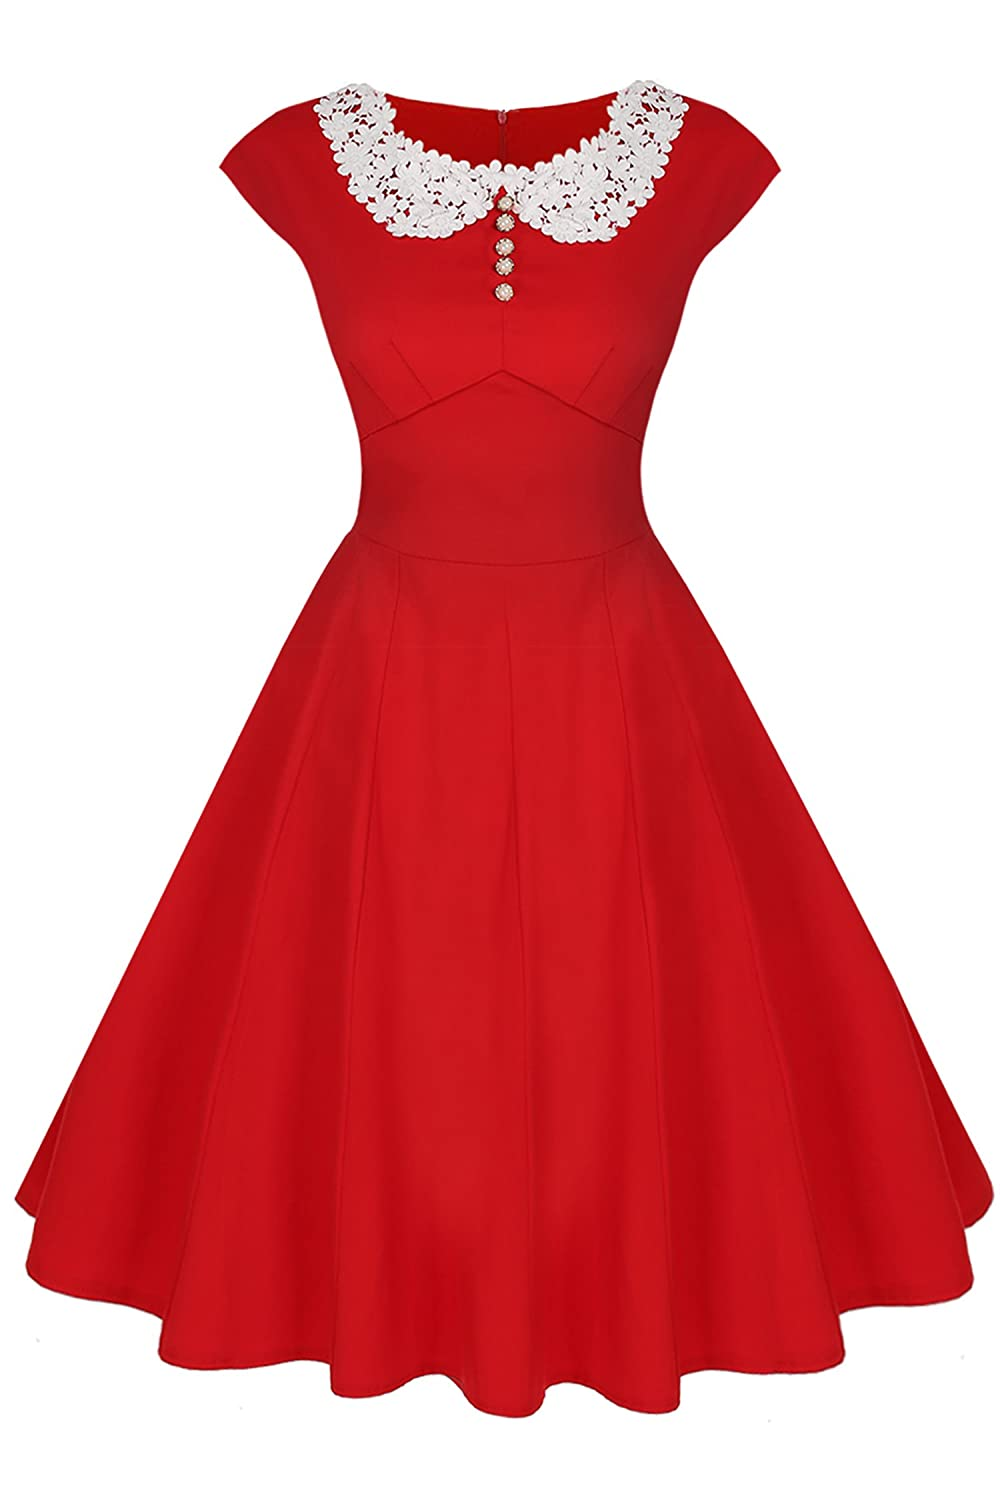 Vintage Tea Dresses, Floral Tea Dresses, Tea Length Dresses ACEVOG Womens Classy Vintage Audrey Hepburn Style 1940s Rockabilly Evening Dress $19.99 AT vintagedancer.com